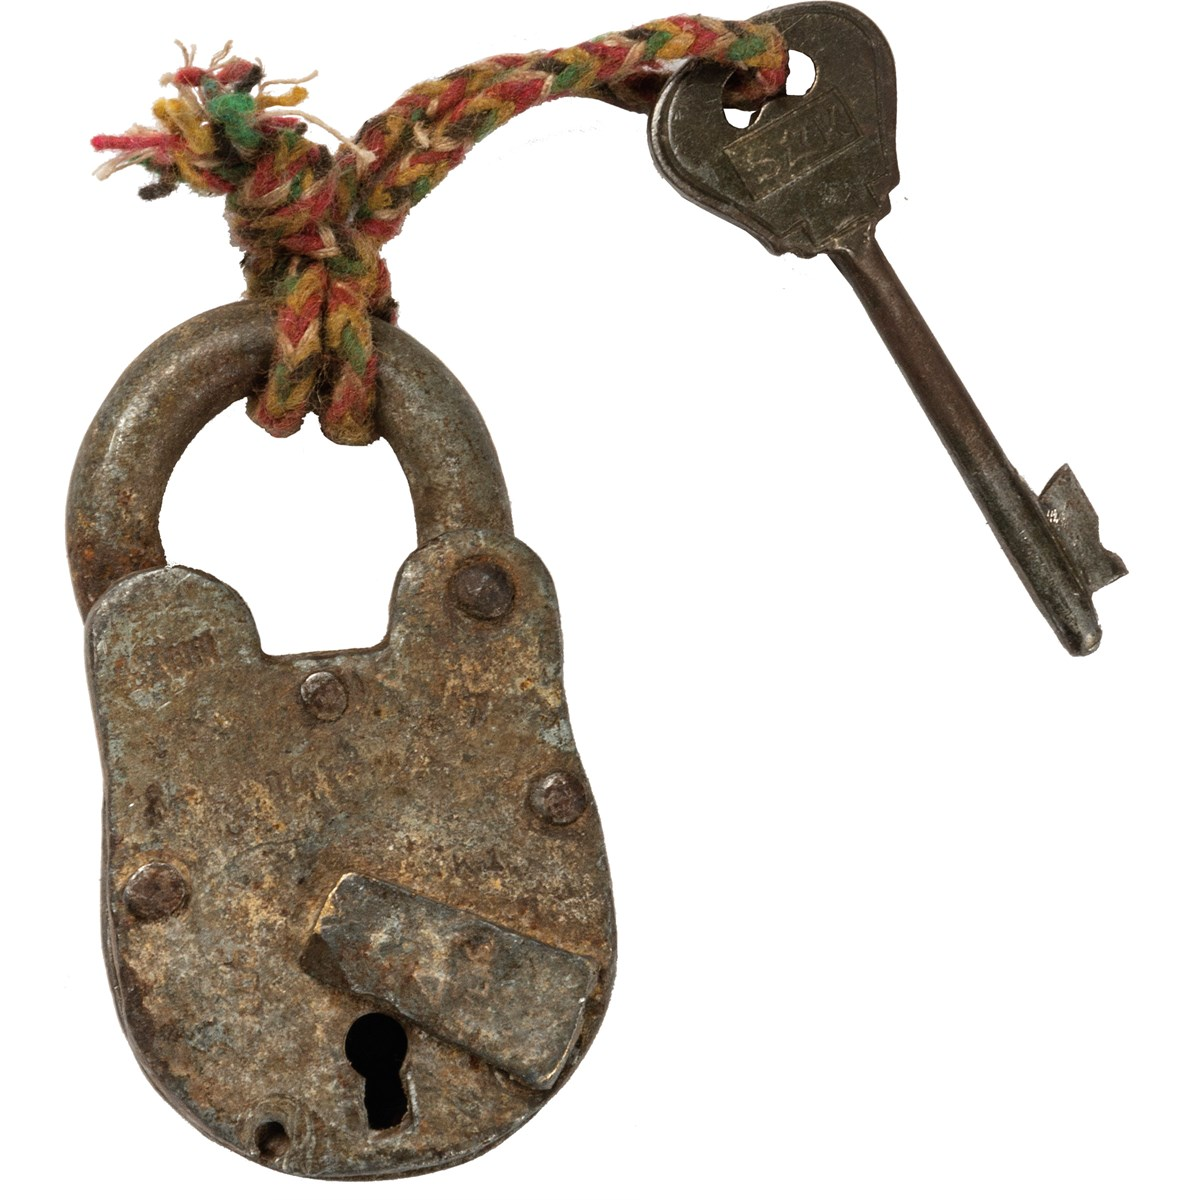 "Lock & Key - Antique - 1.50"" x 2.75"" x 0.75"" - Metal, Fabric"